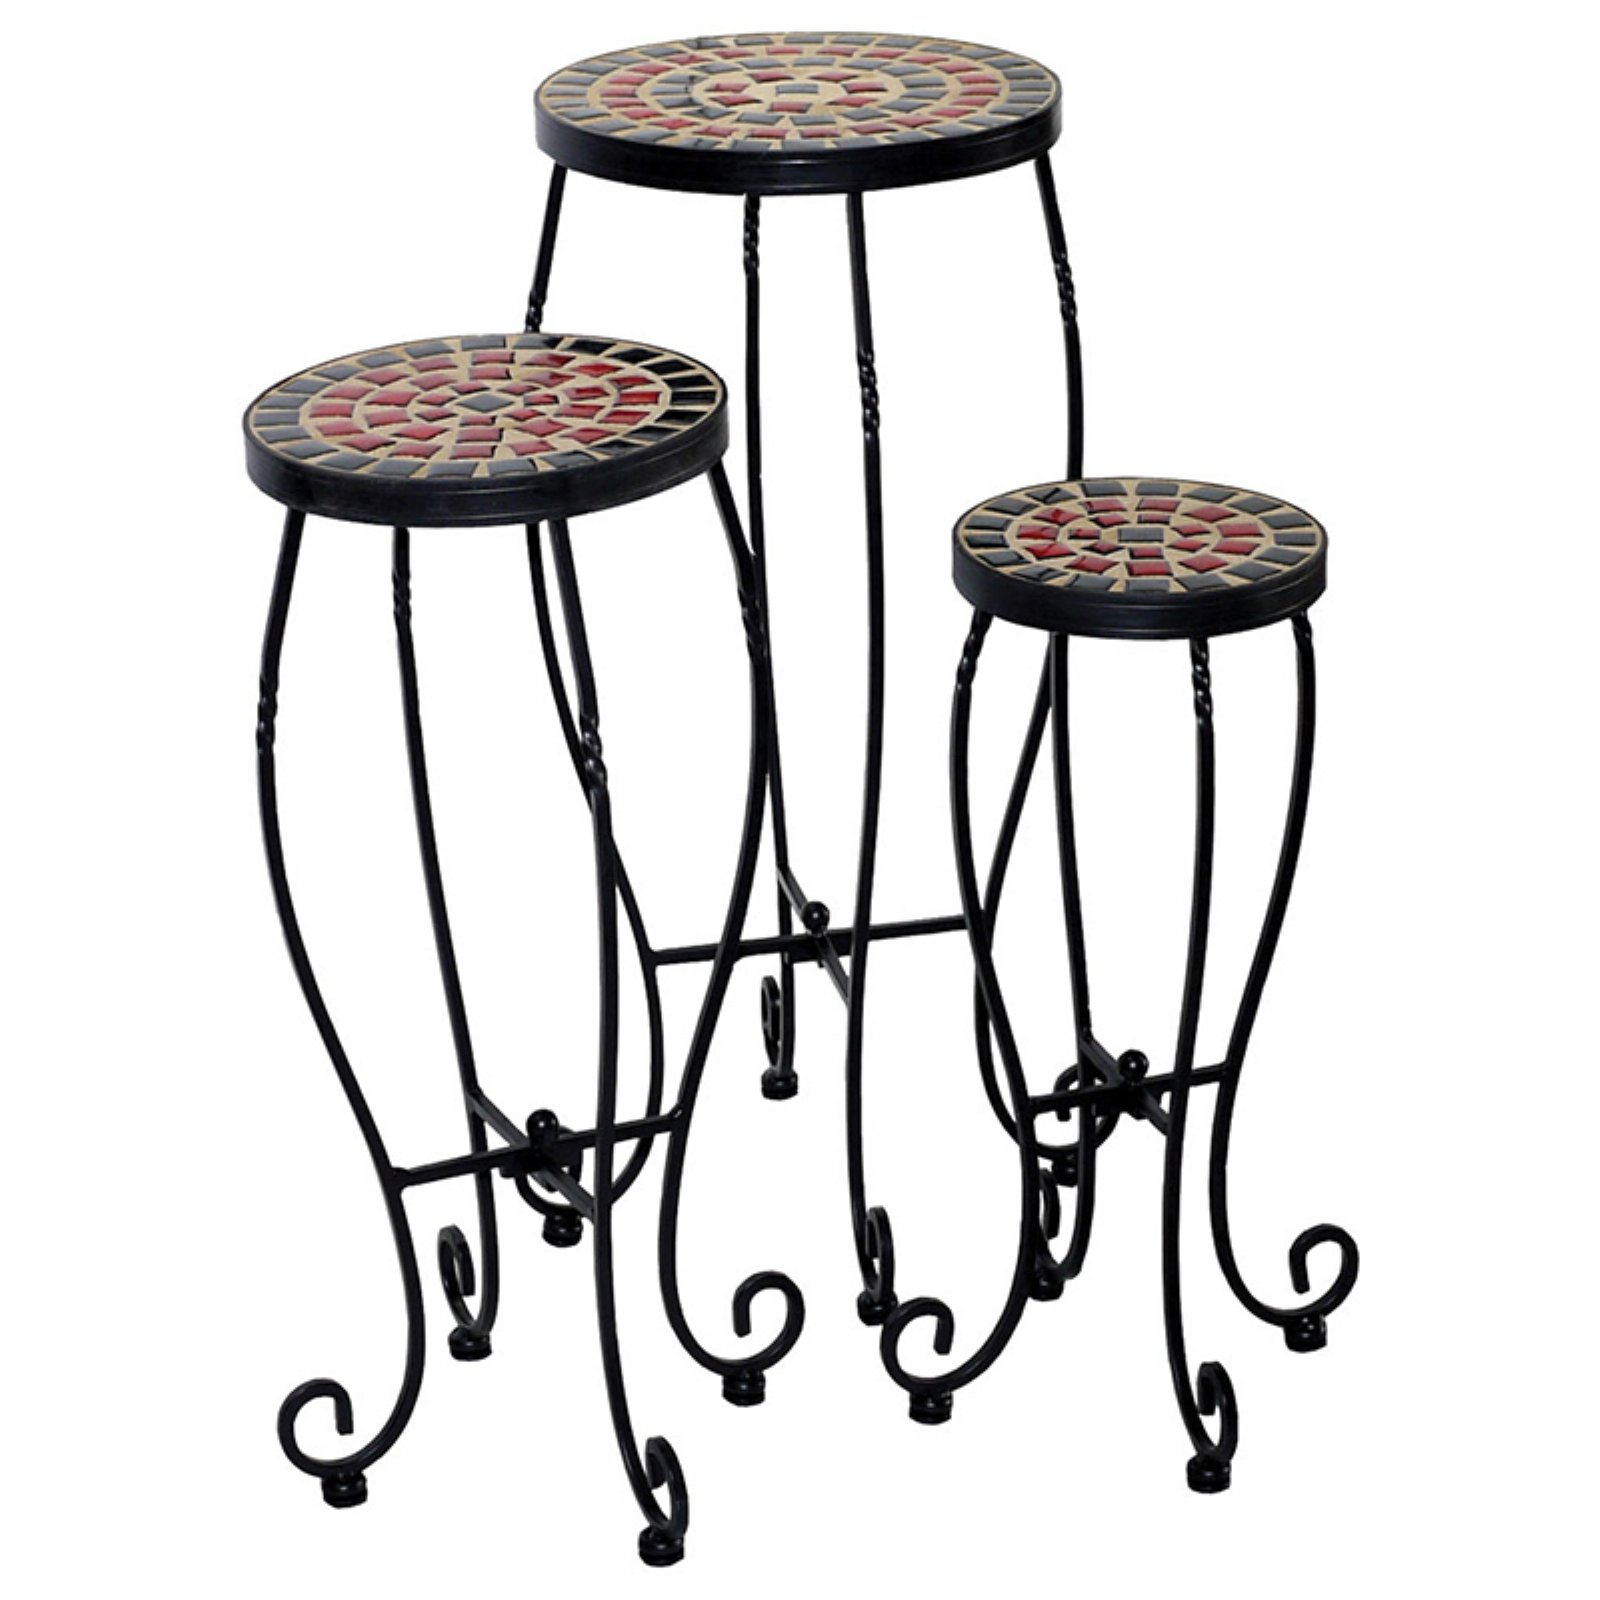 Alfresco Home Stellarton Plant Stands Set of 3 by Alfresco Home